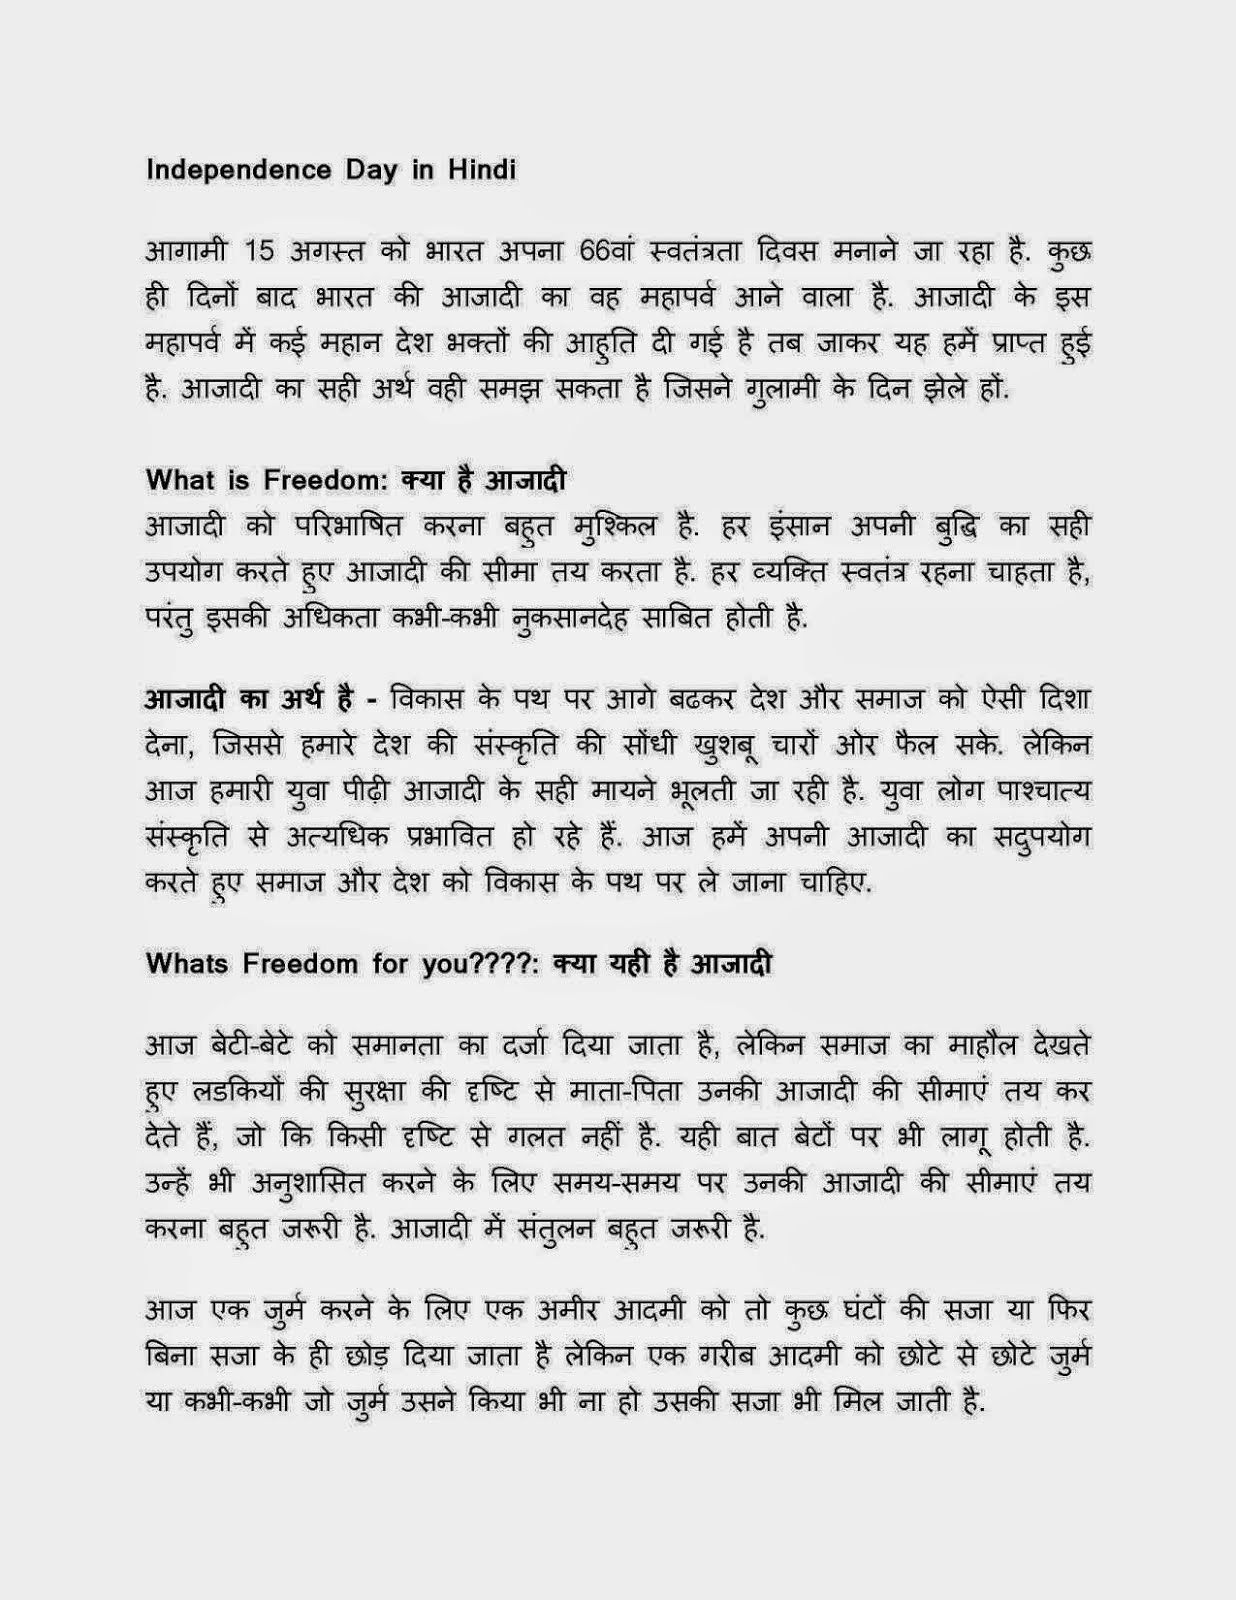 Science Argumentative Essay Topics Essay About My Favourite Teacher Independence Day Poems For School Kids In  Hindi Essays On The Yellow Wallpaper also Essay Proposal Example Independence Day Poems For School Kids In Hindi  A  Pinterest  English Essay Writing Help